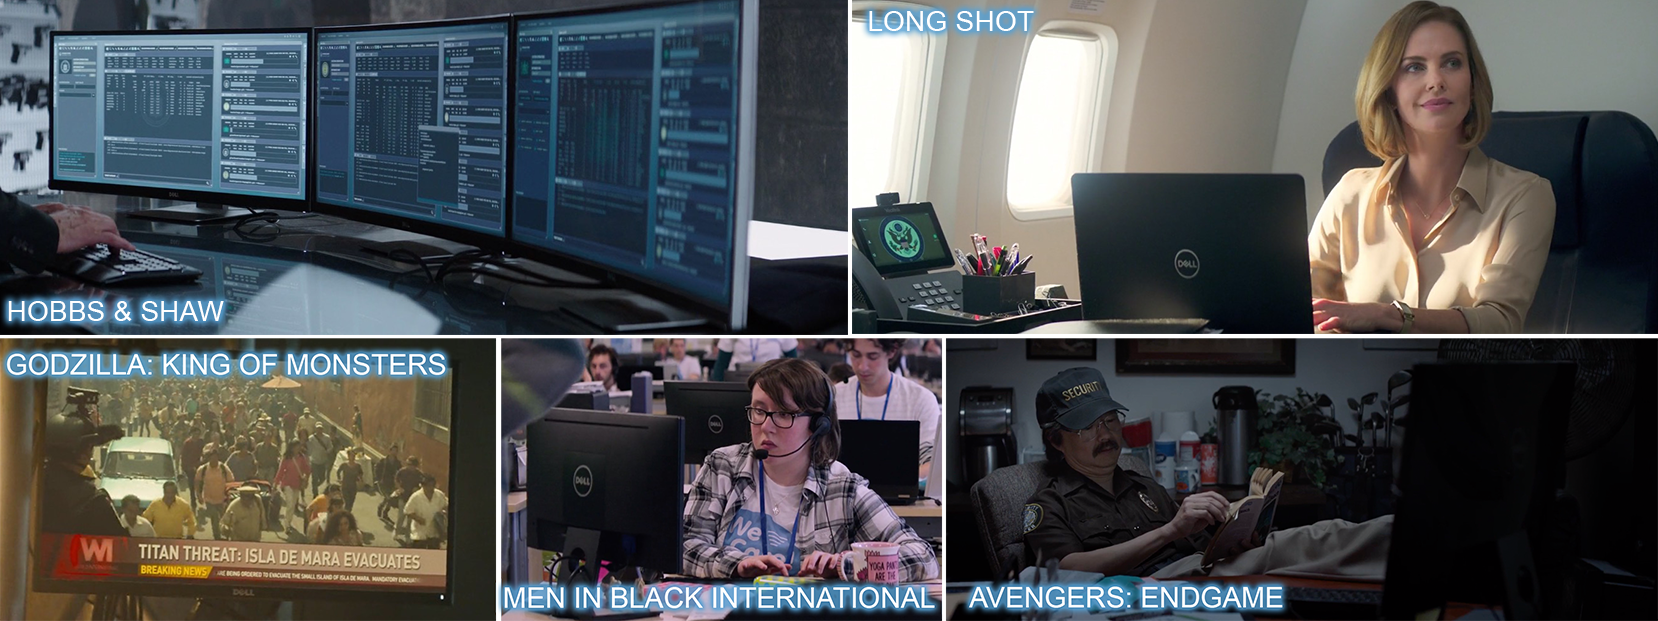 Dell product placement in 2019 movies